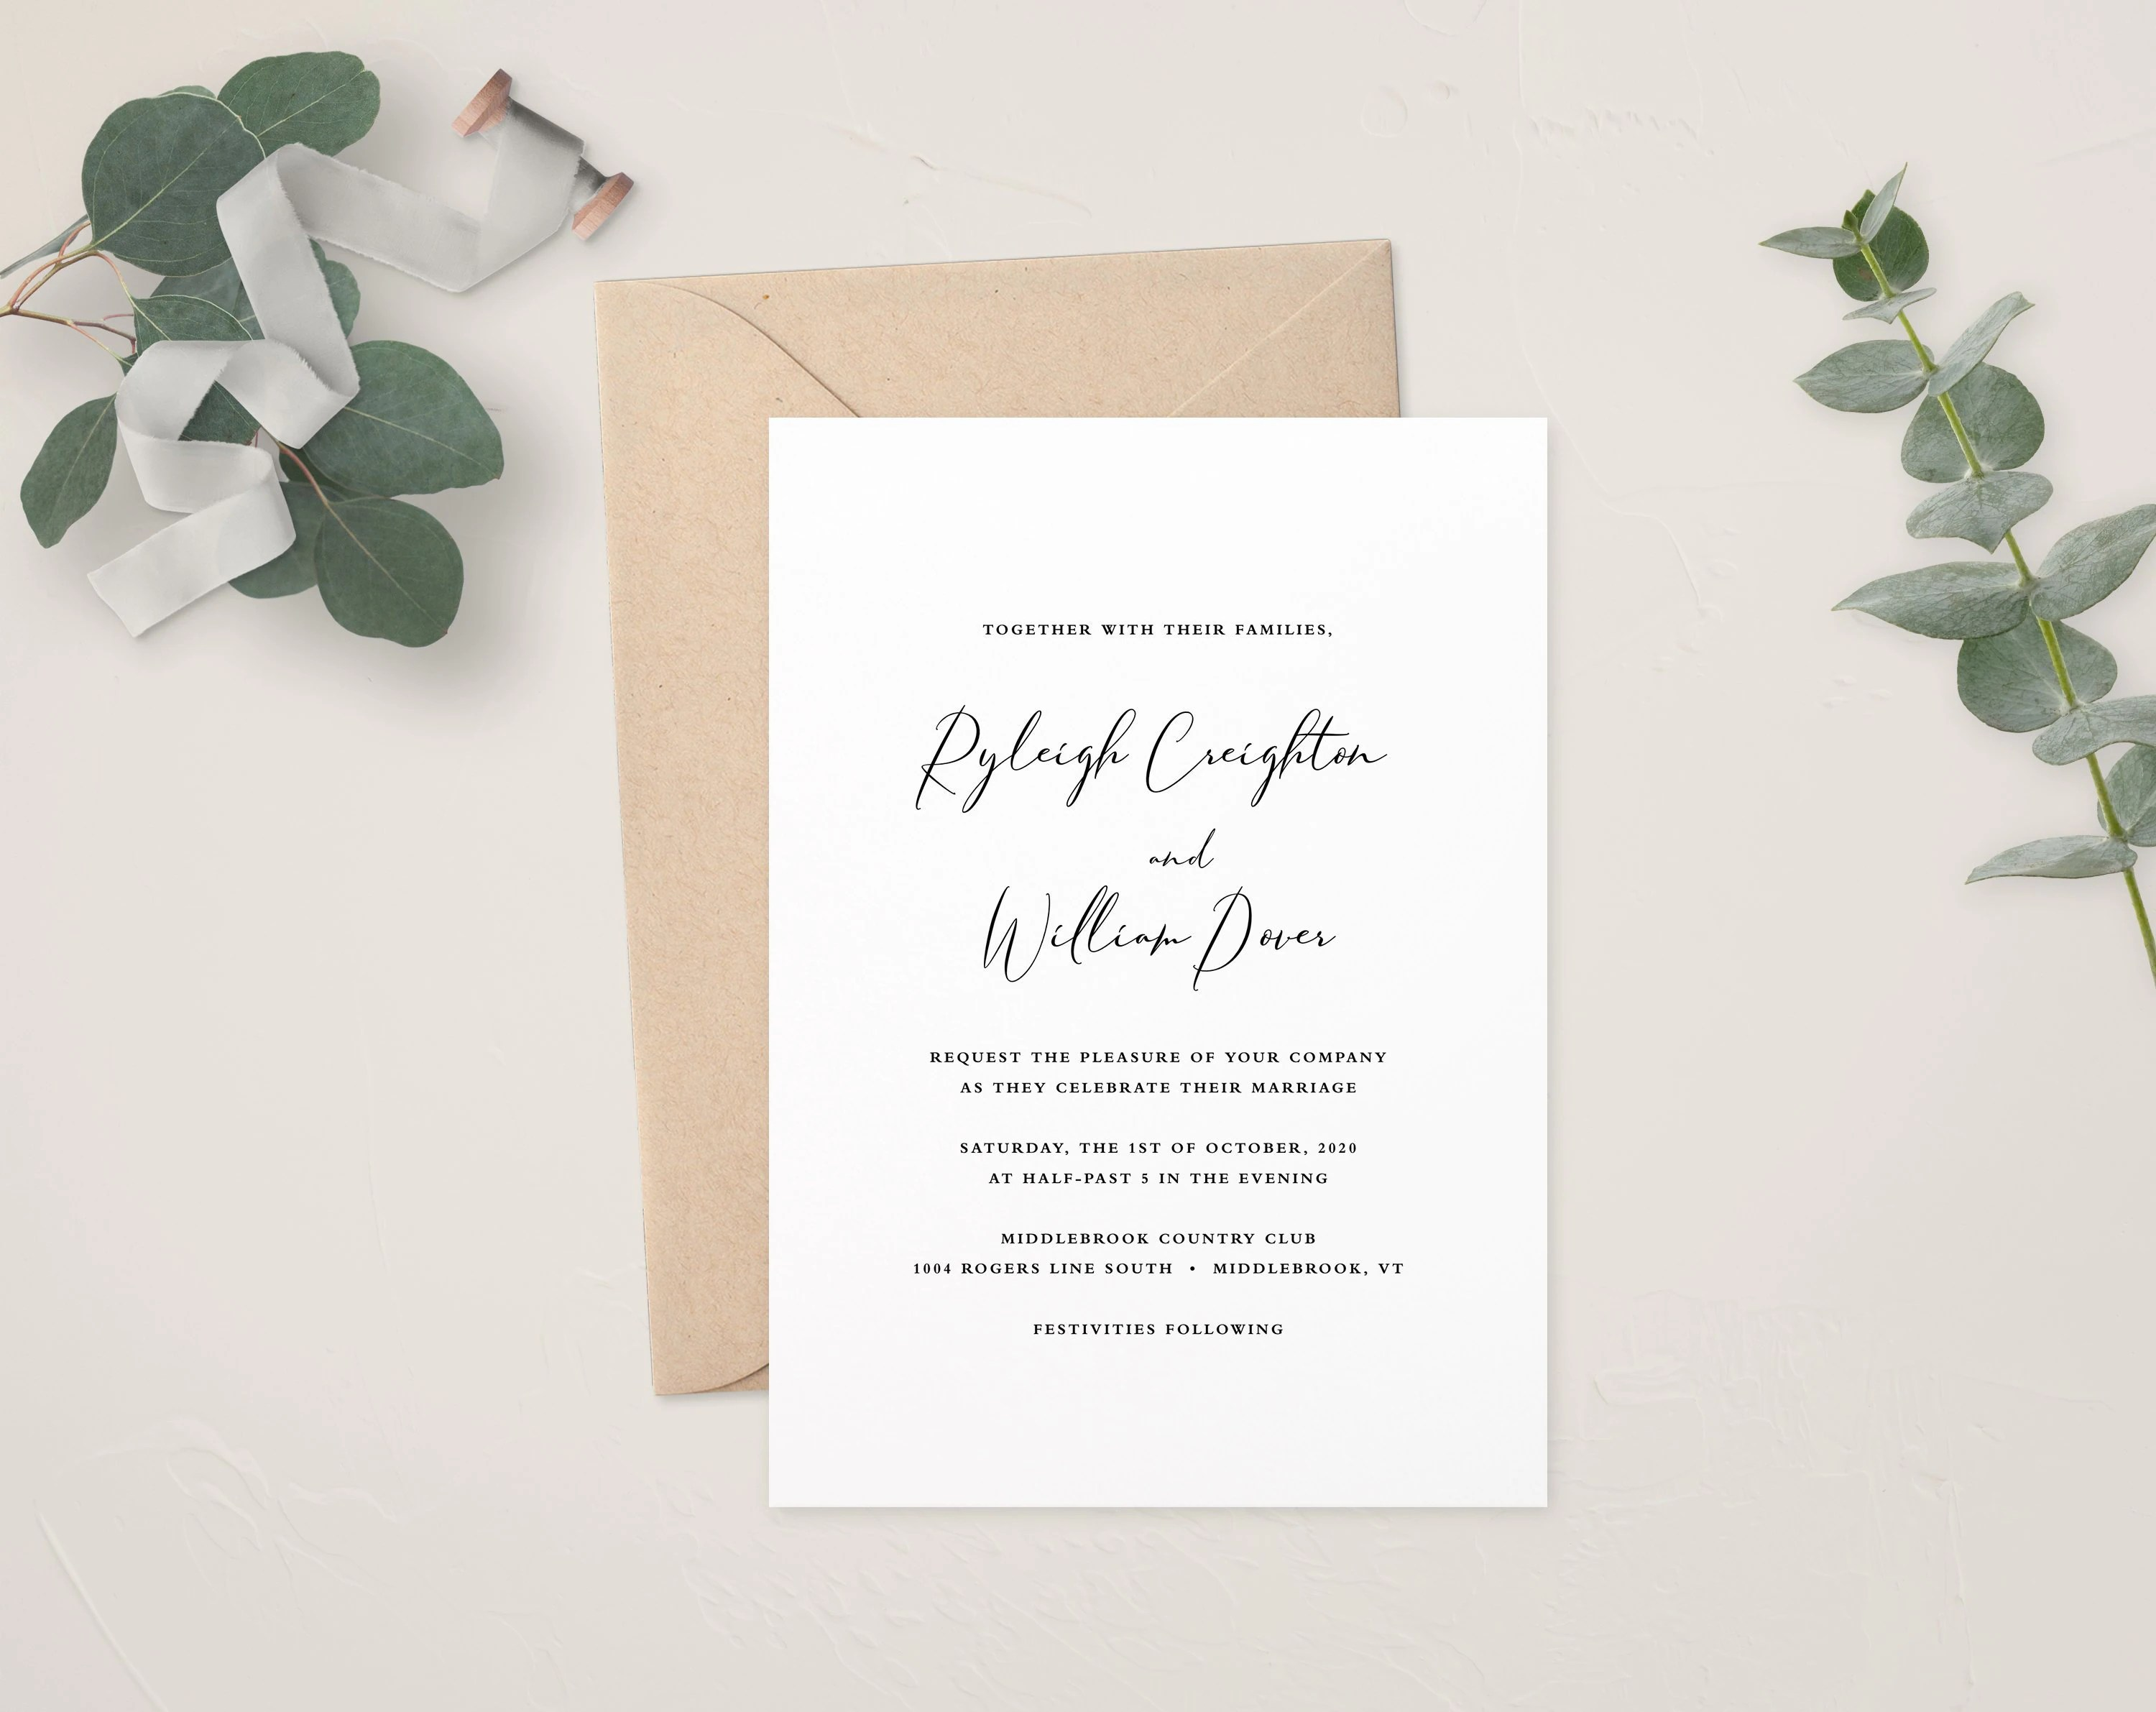 Calligraphy Photo Editor Online Kendra Wedding Invitation Template Calligraphy Wedding Invitations Printable Wedding Invites Romantic Wedding Rustic Wedding Formal